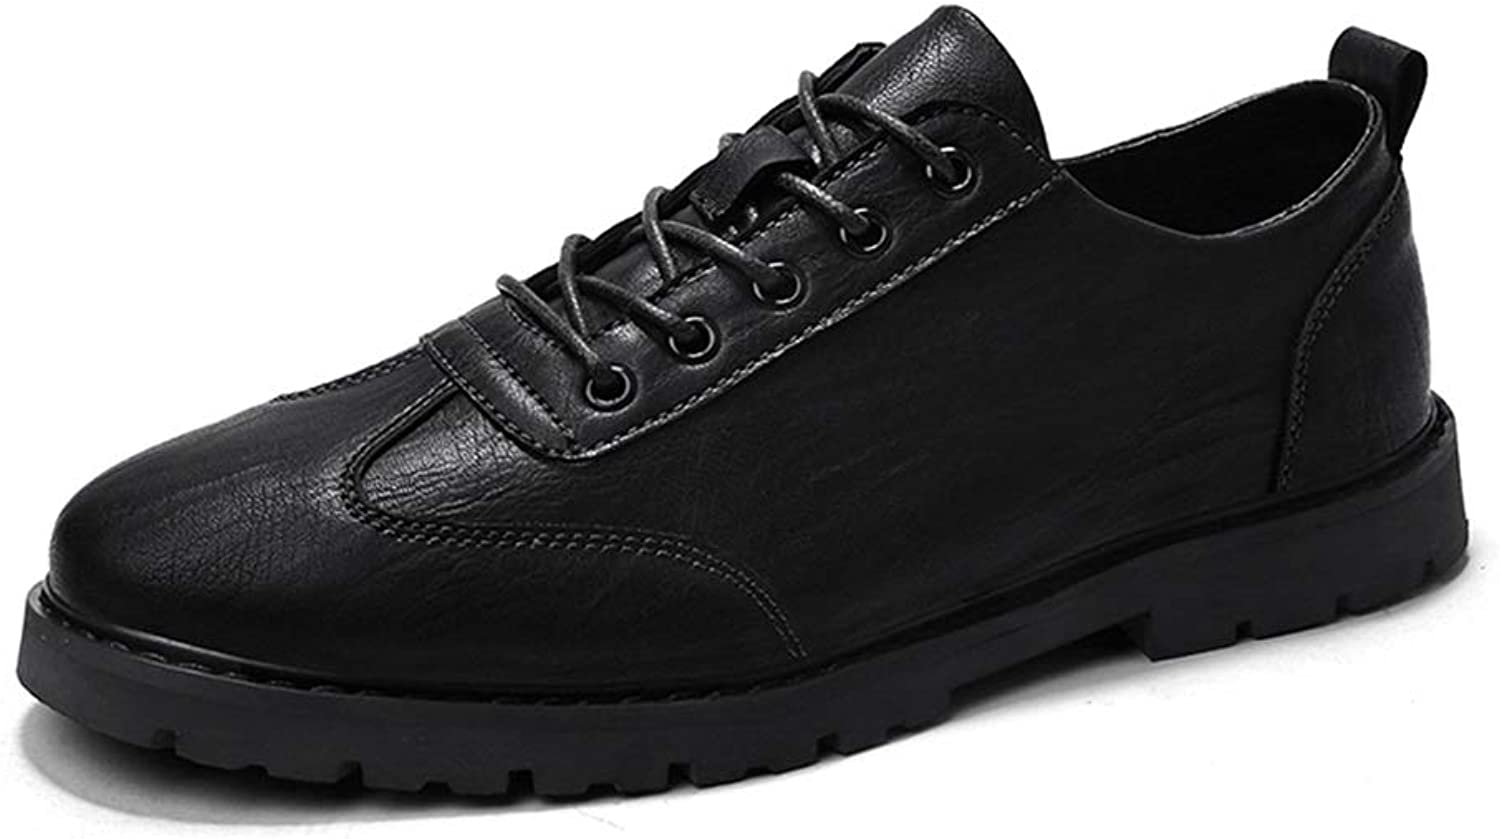 Easy Go Shopping Sneakers for Men Athletic Sport shoes Lace up Microfiber Leather Running Skating Work Cricket shoes (color   Black, Size   8.5 UK)